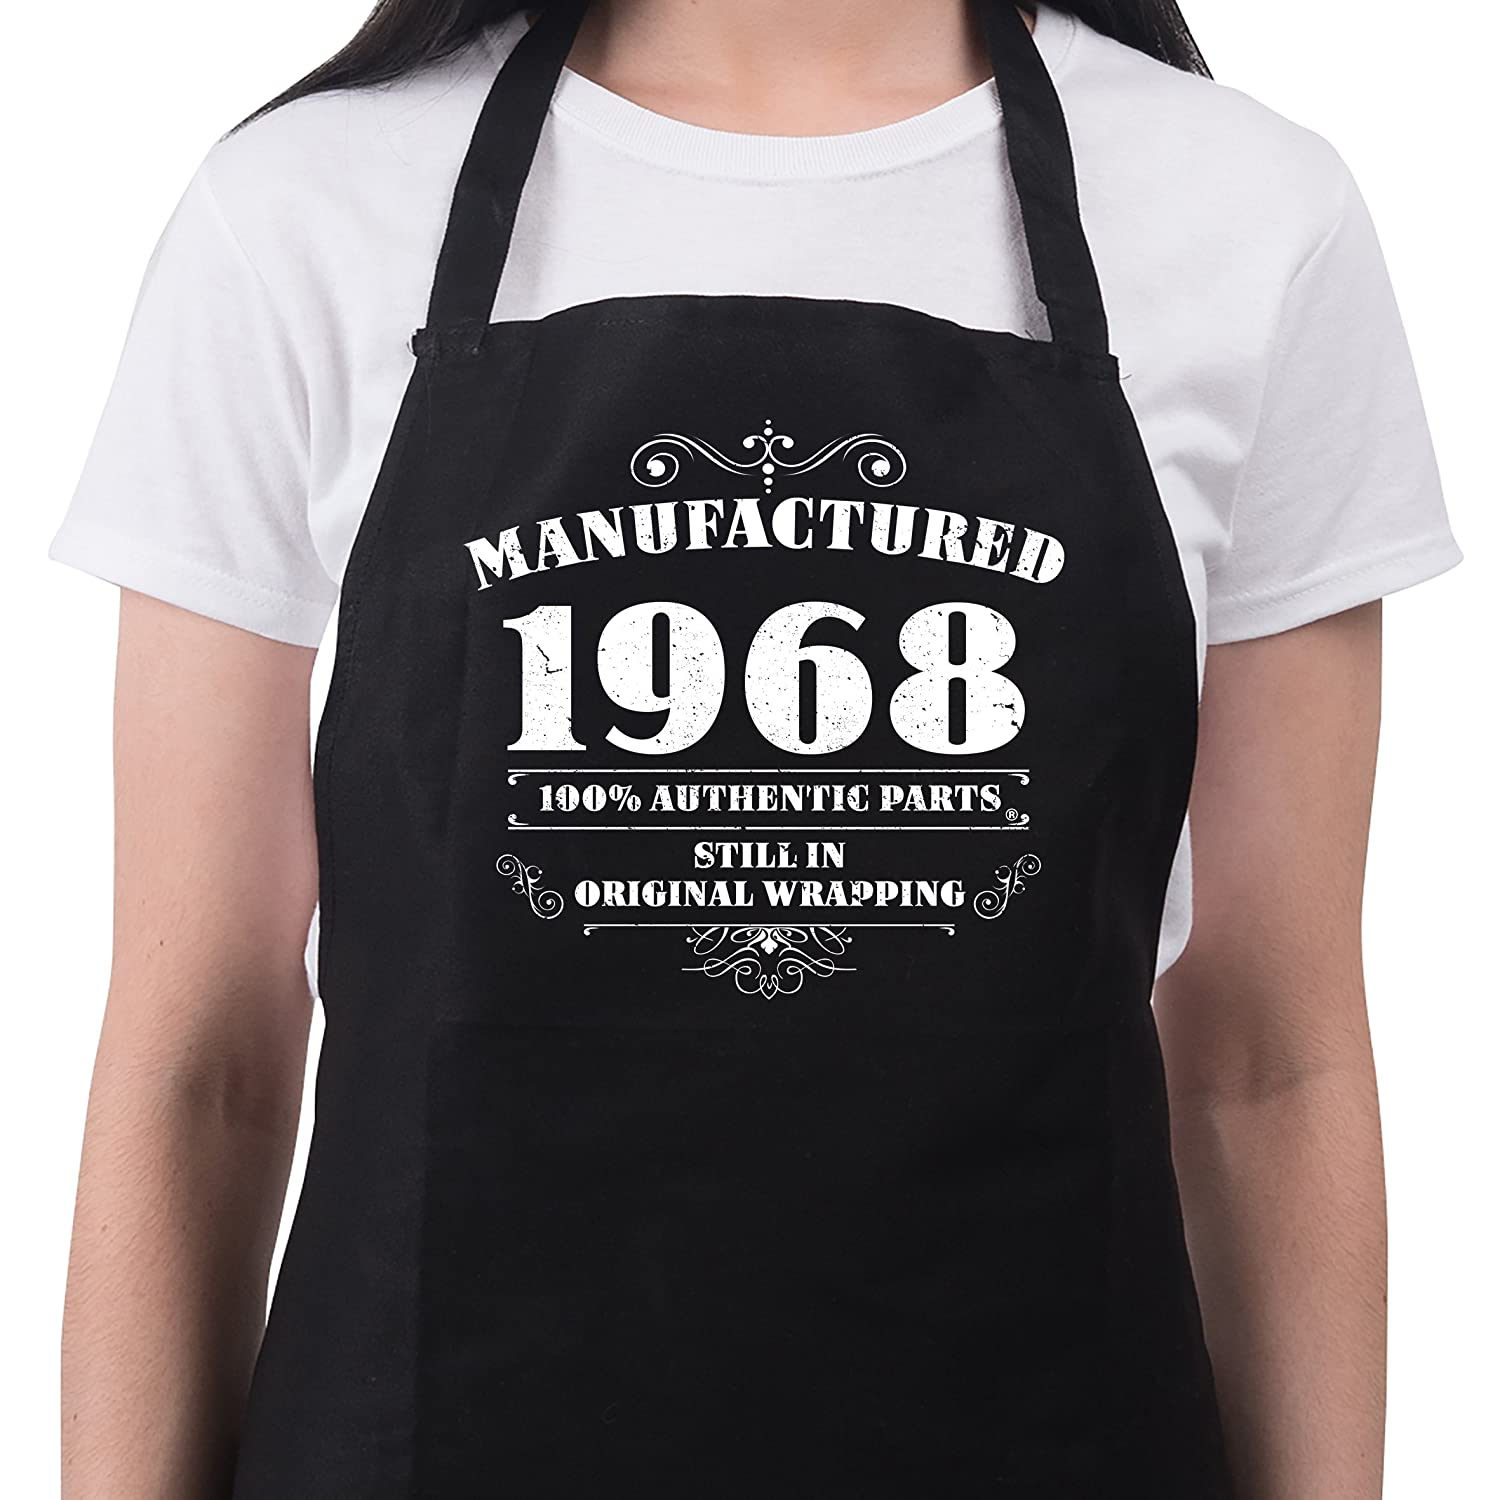 Bang Tidy Clothing 50th Birthday Presents for Women Ladies Gifts Her Funny Apron Manufactured 1968 RA603